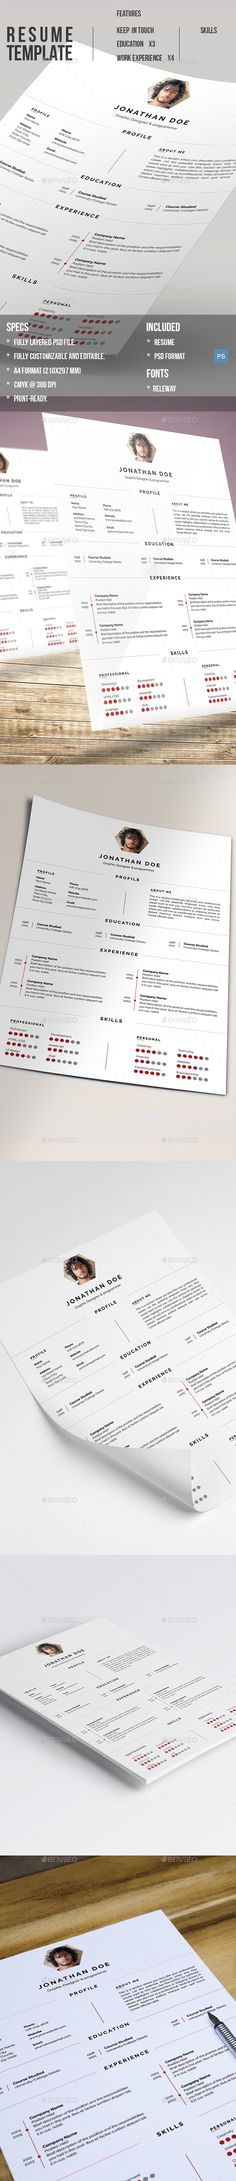 Love these resumes, totally eye-catching Resume layouts - professional resume fonts